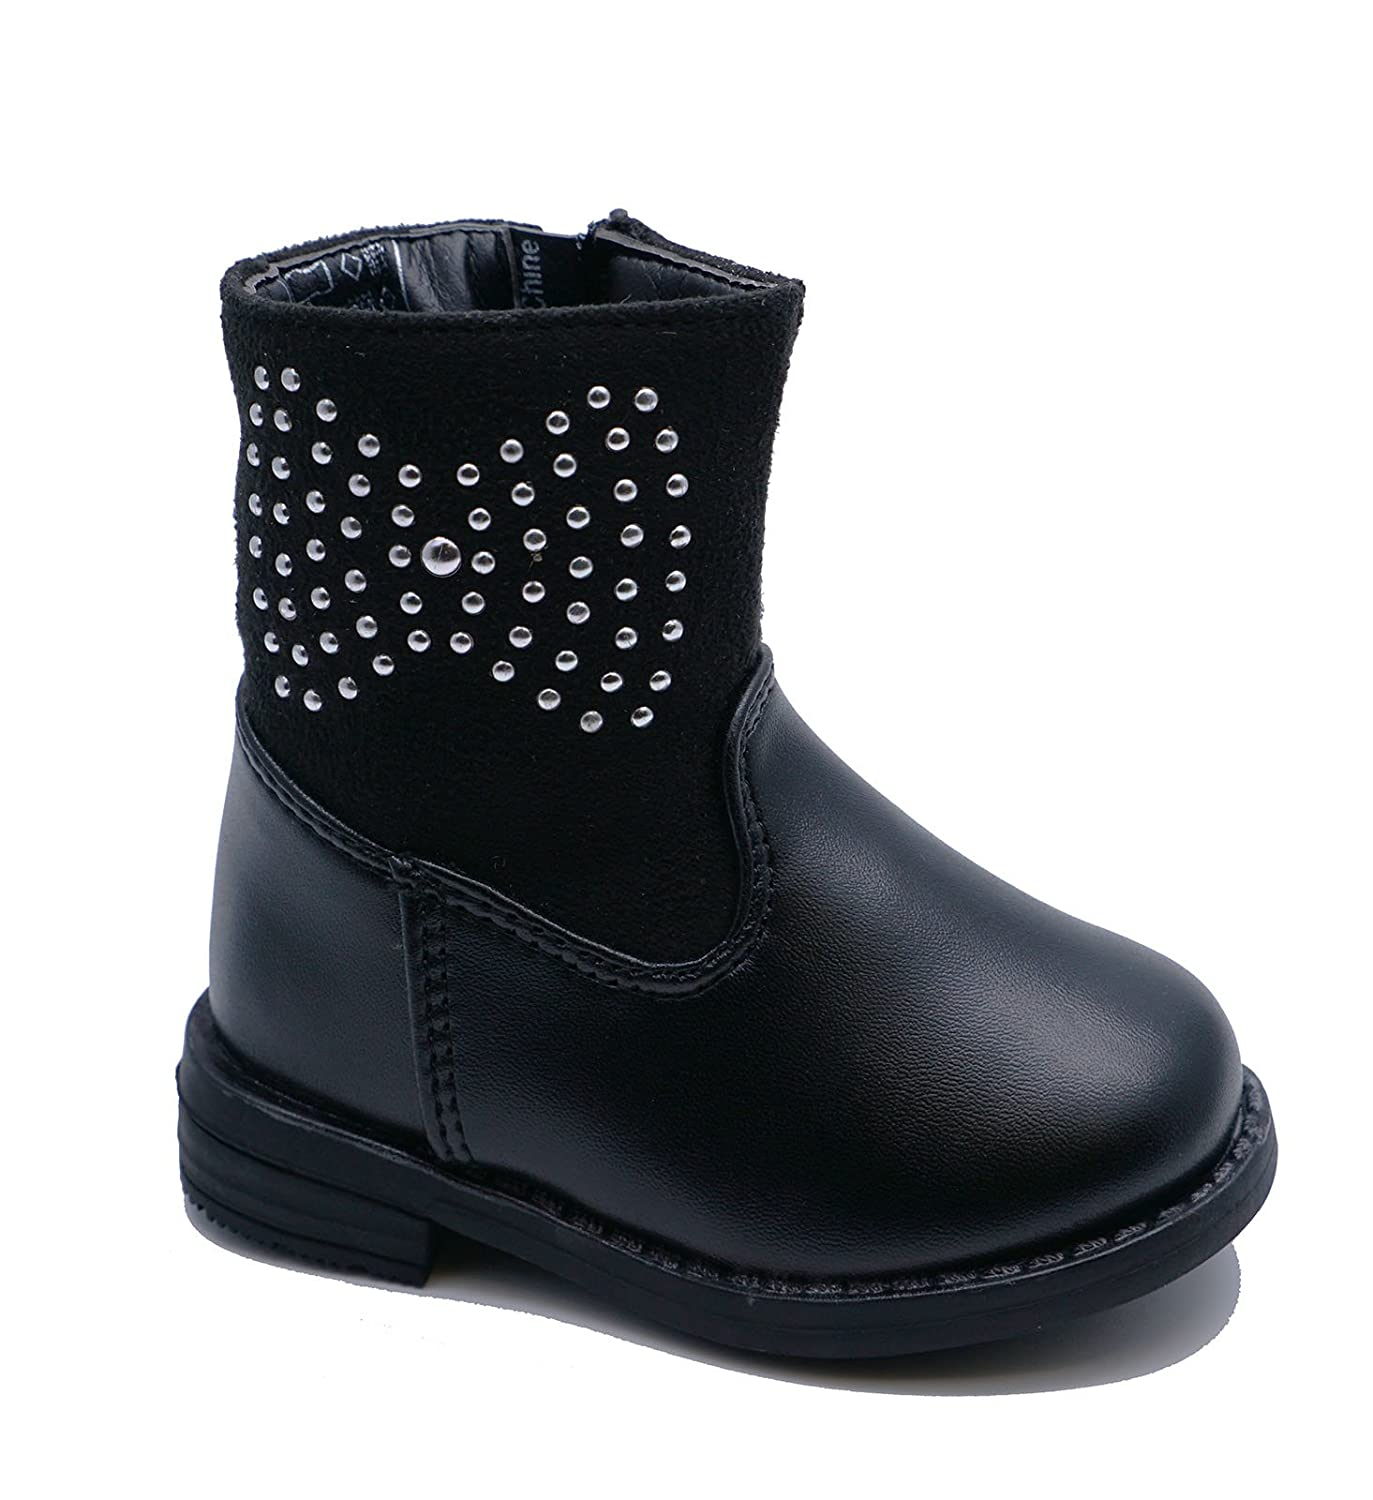 Girls Kids Childrens Infants Diamante Warm Winter Ankle Boots Shoes Pumps  Sizes 3-7: Amazon.co.uk: Shoes & Bags